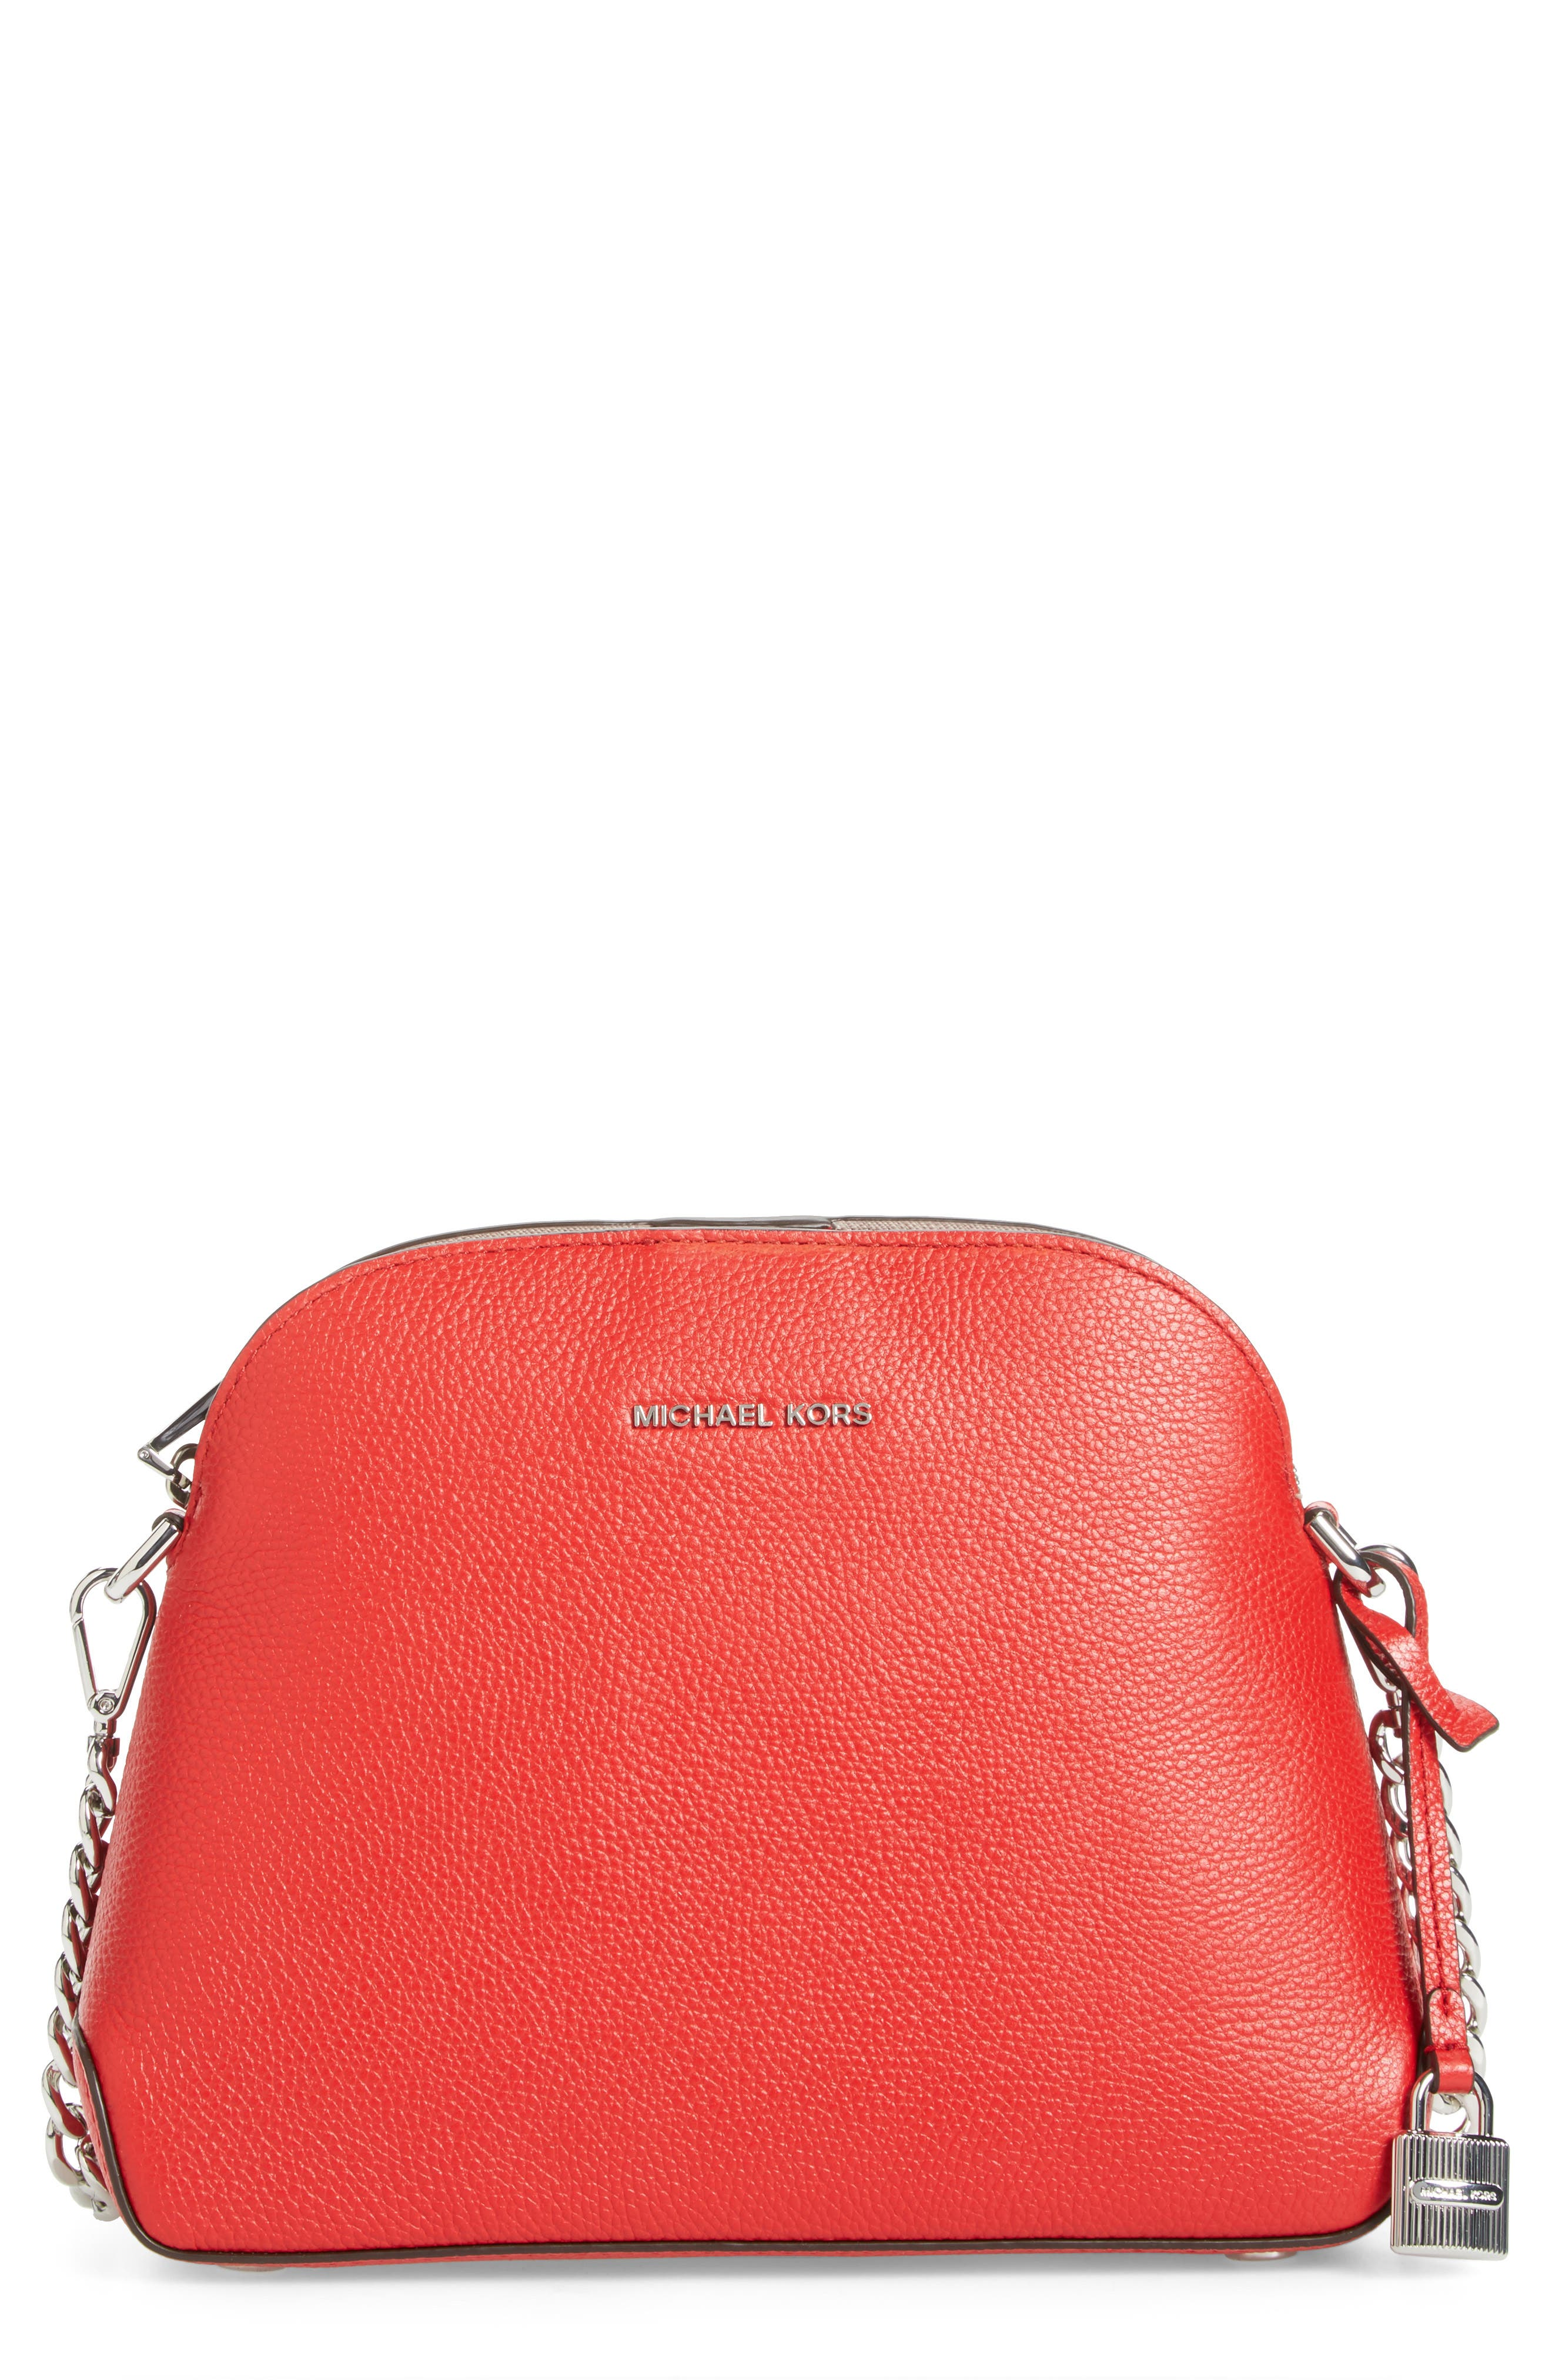 Alternate Image 1 Selected - MICHAEL by Michael Kors Medium Mercer Leather Dome Satchel